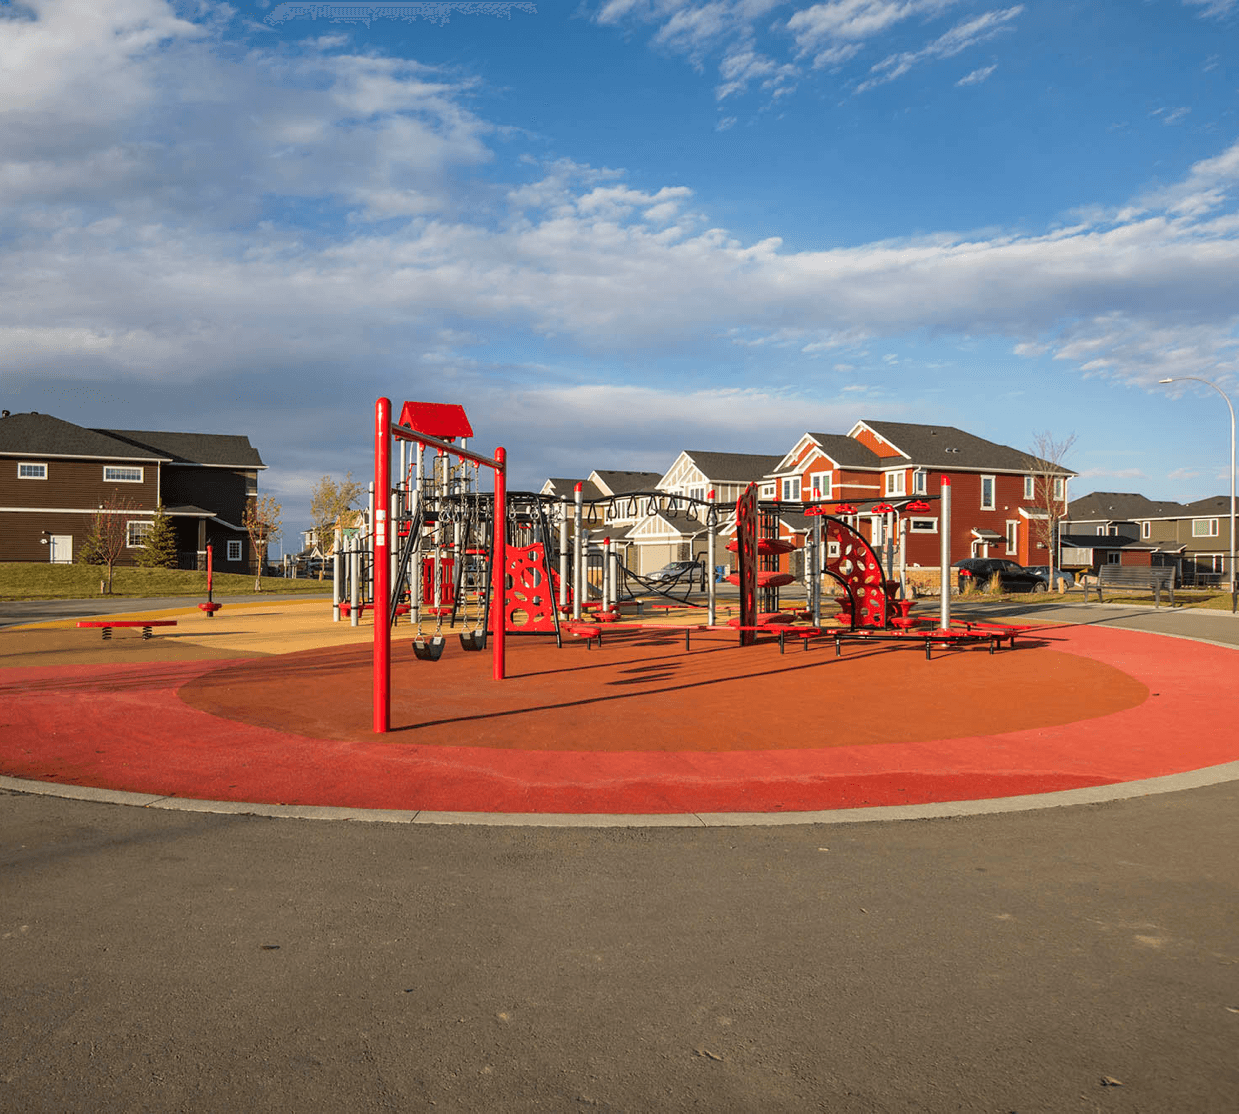 Good Reasons to Live in Redstone Playground Image